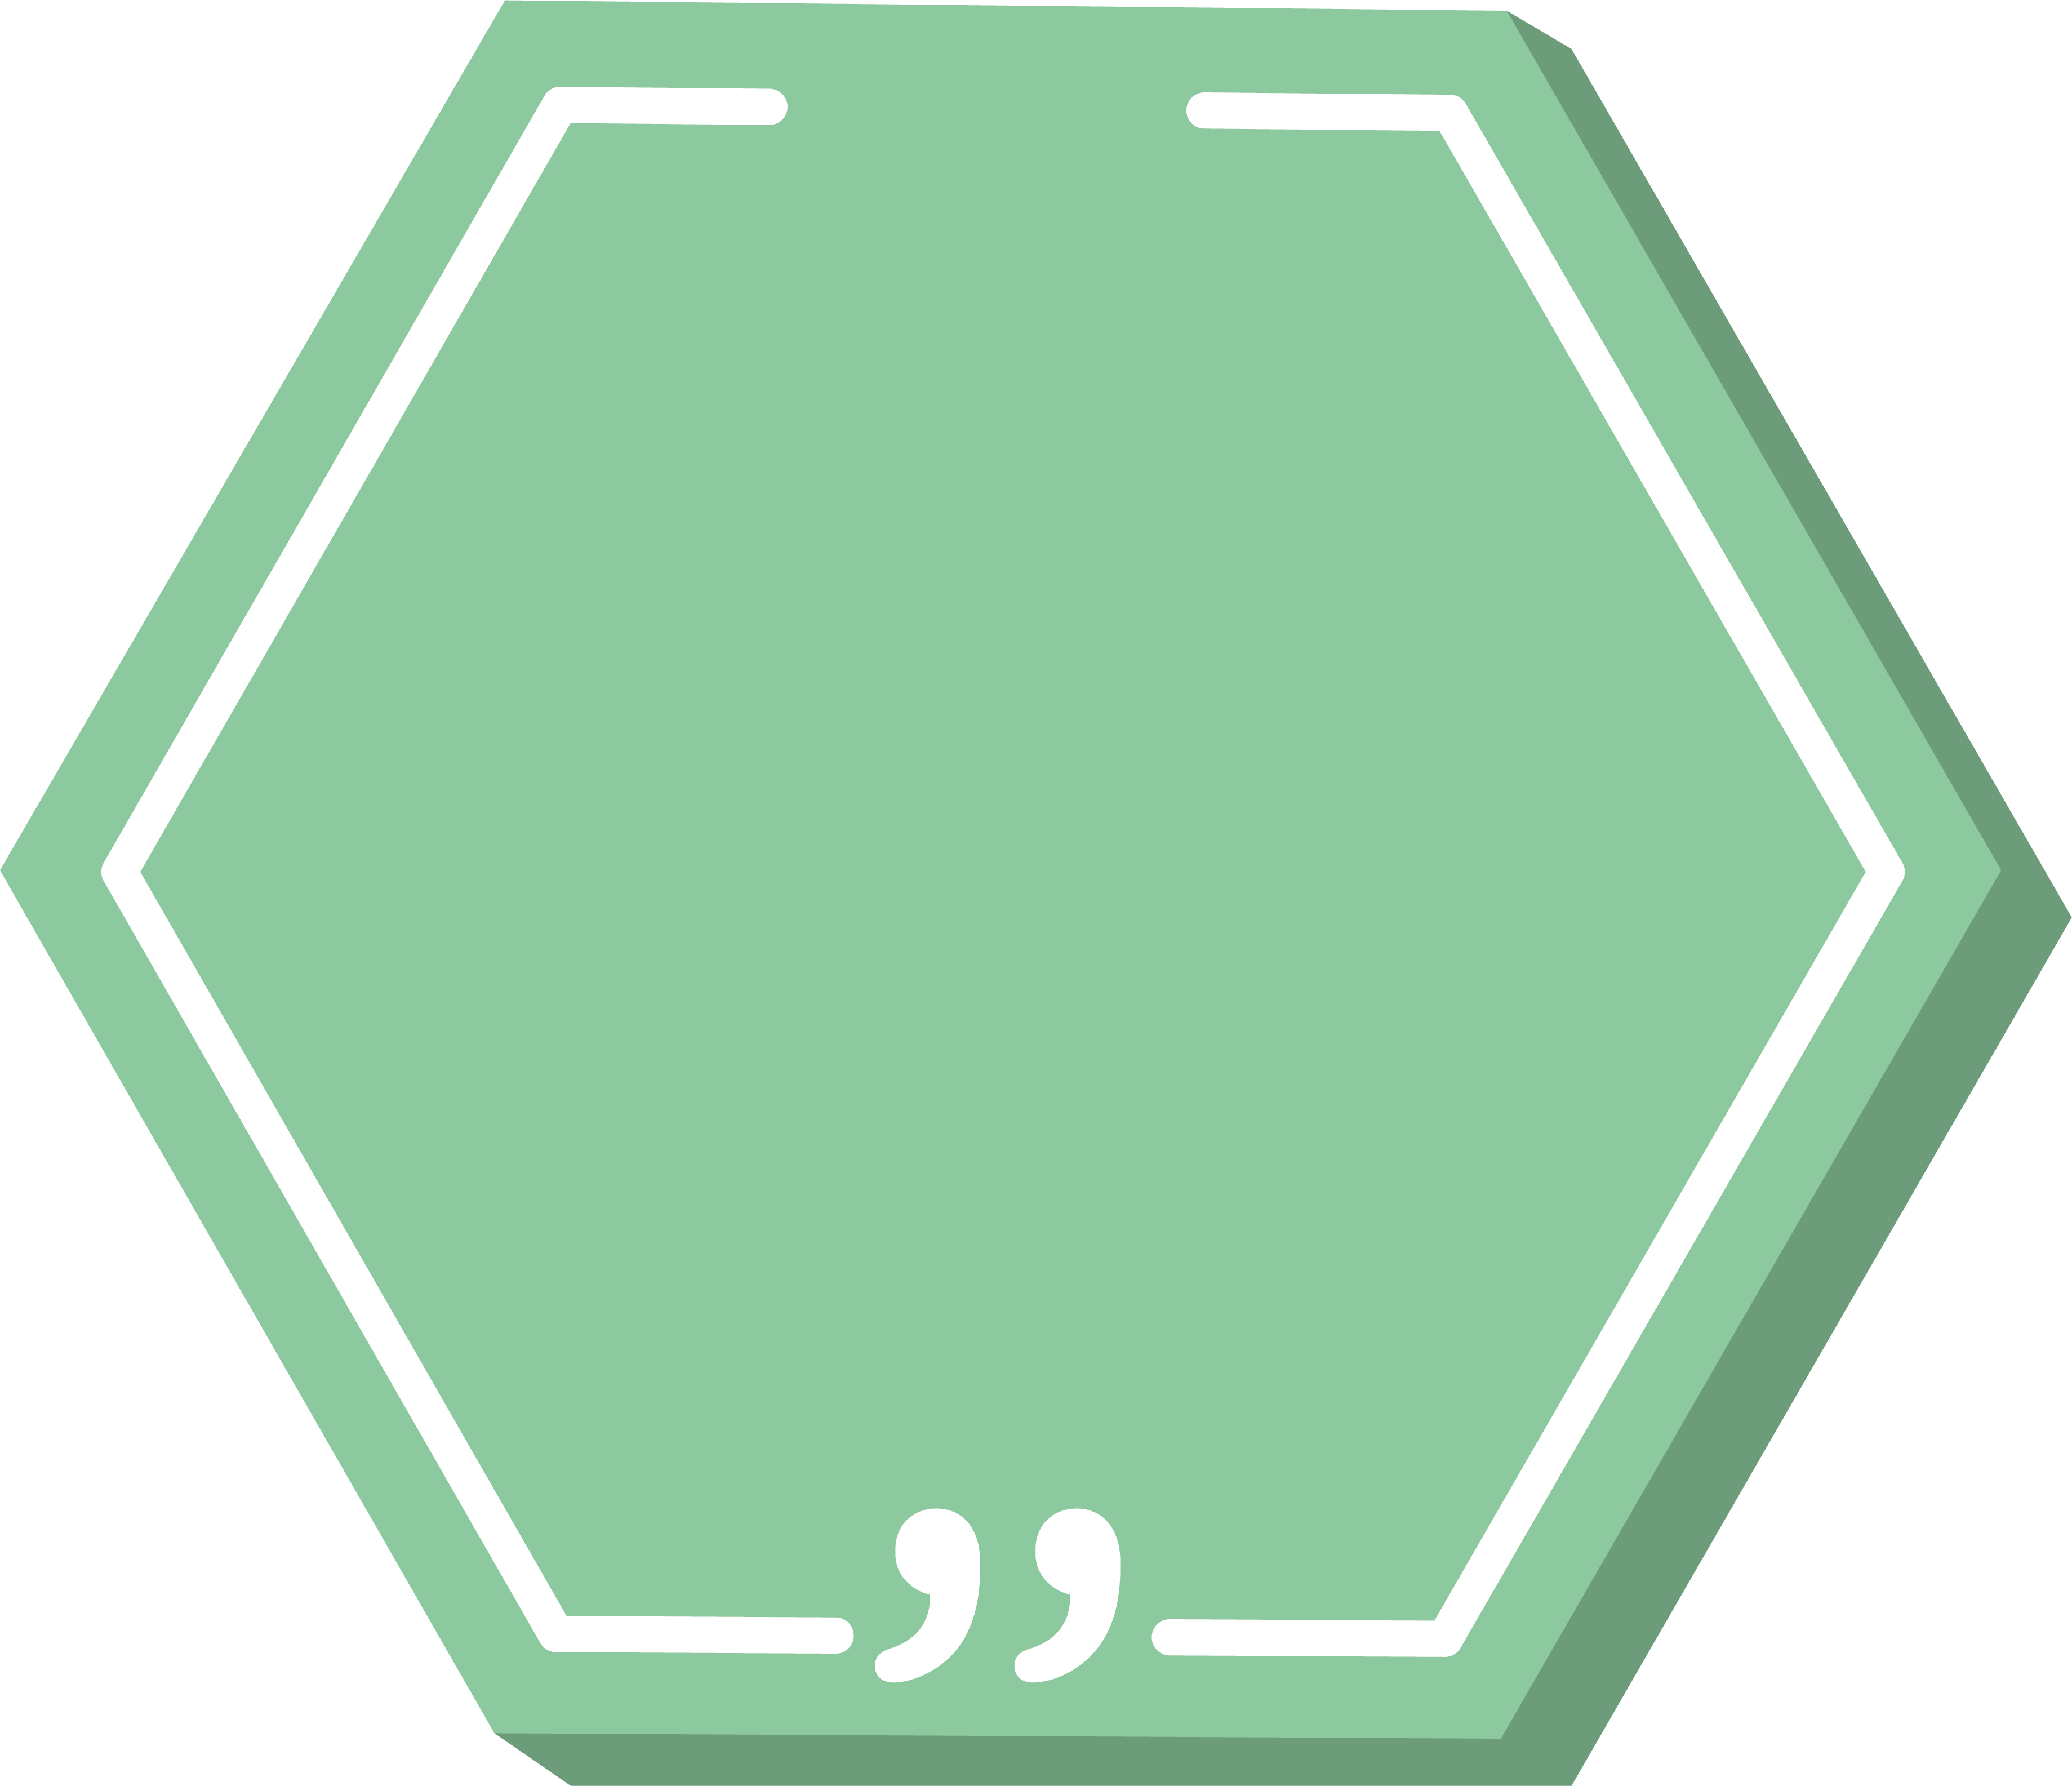 Green hexagon png. Icon title box transprent